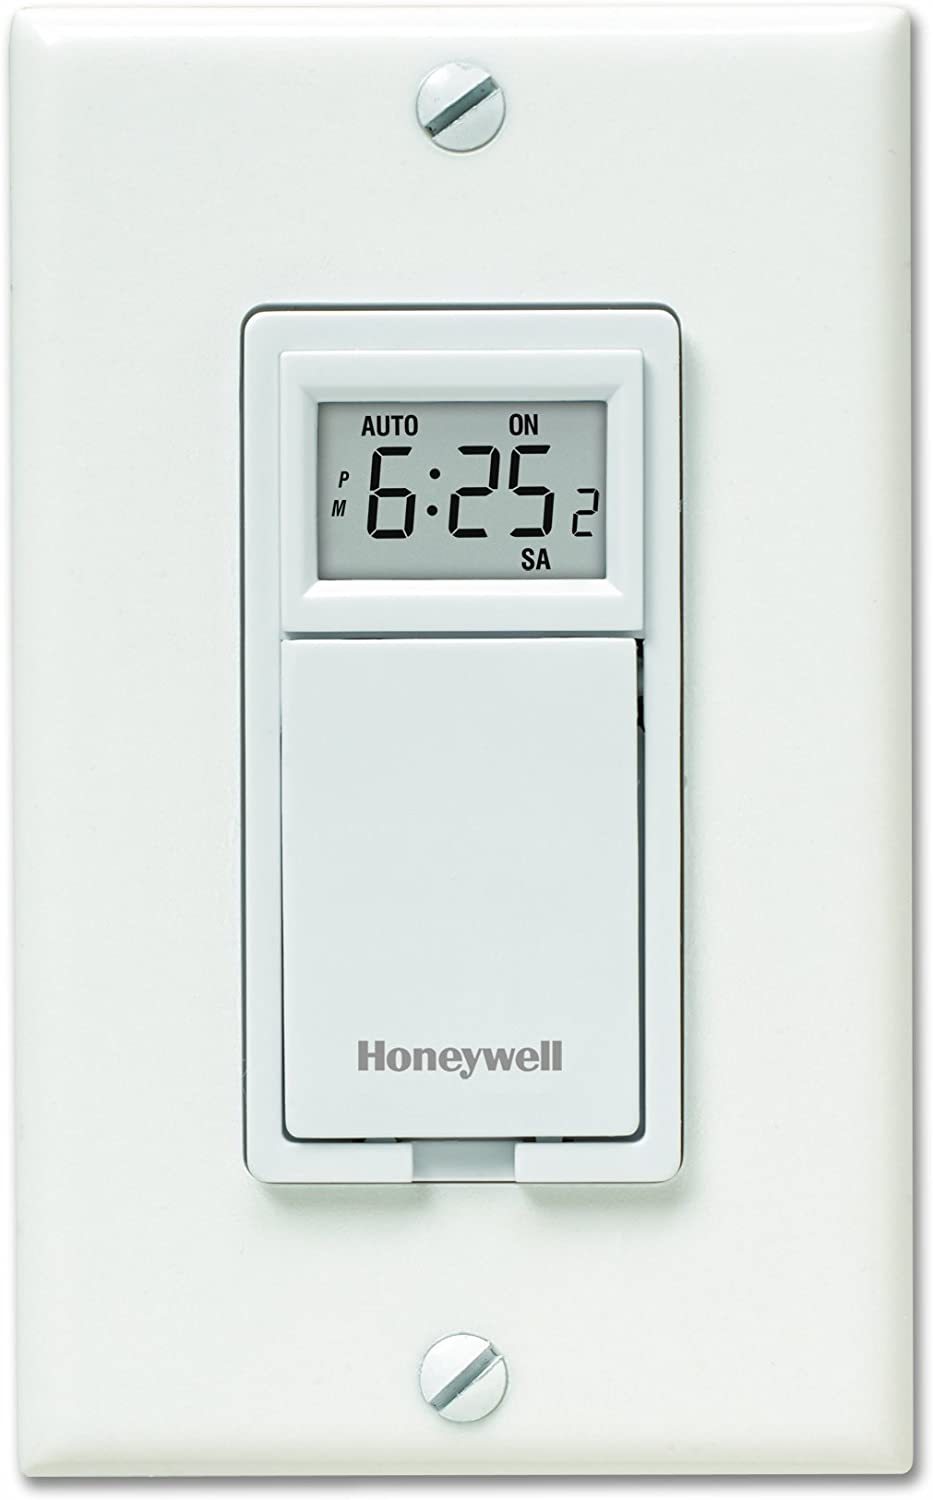 Honeywell RPLS530A 7-Day Programmable Timer Switch, White (Requires 40 W minimum) (Renewed)